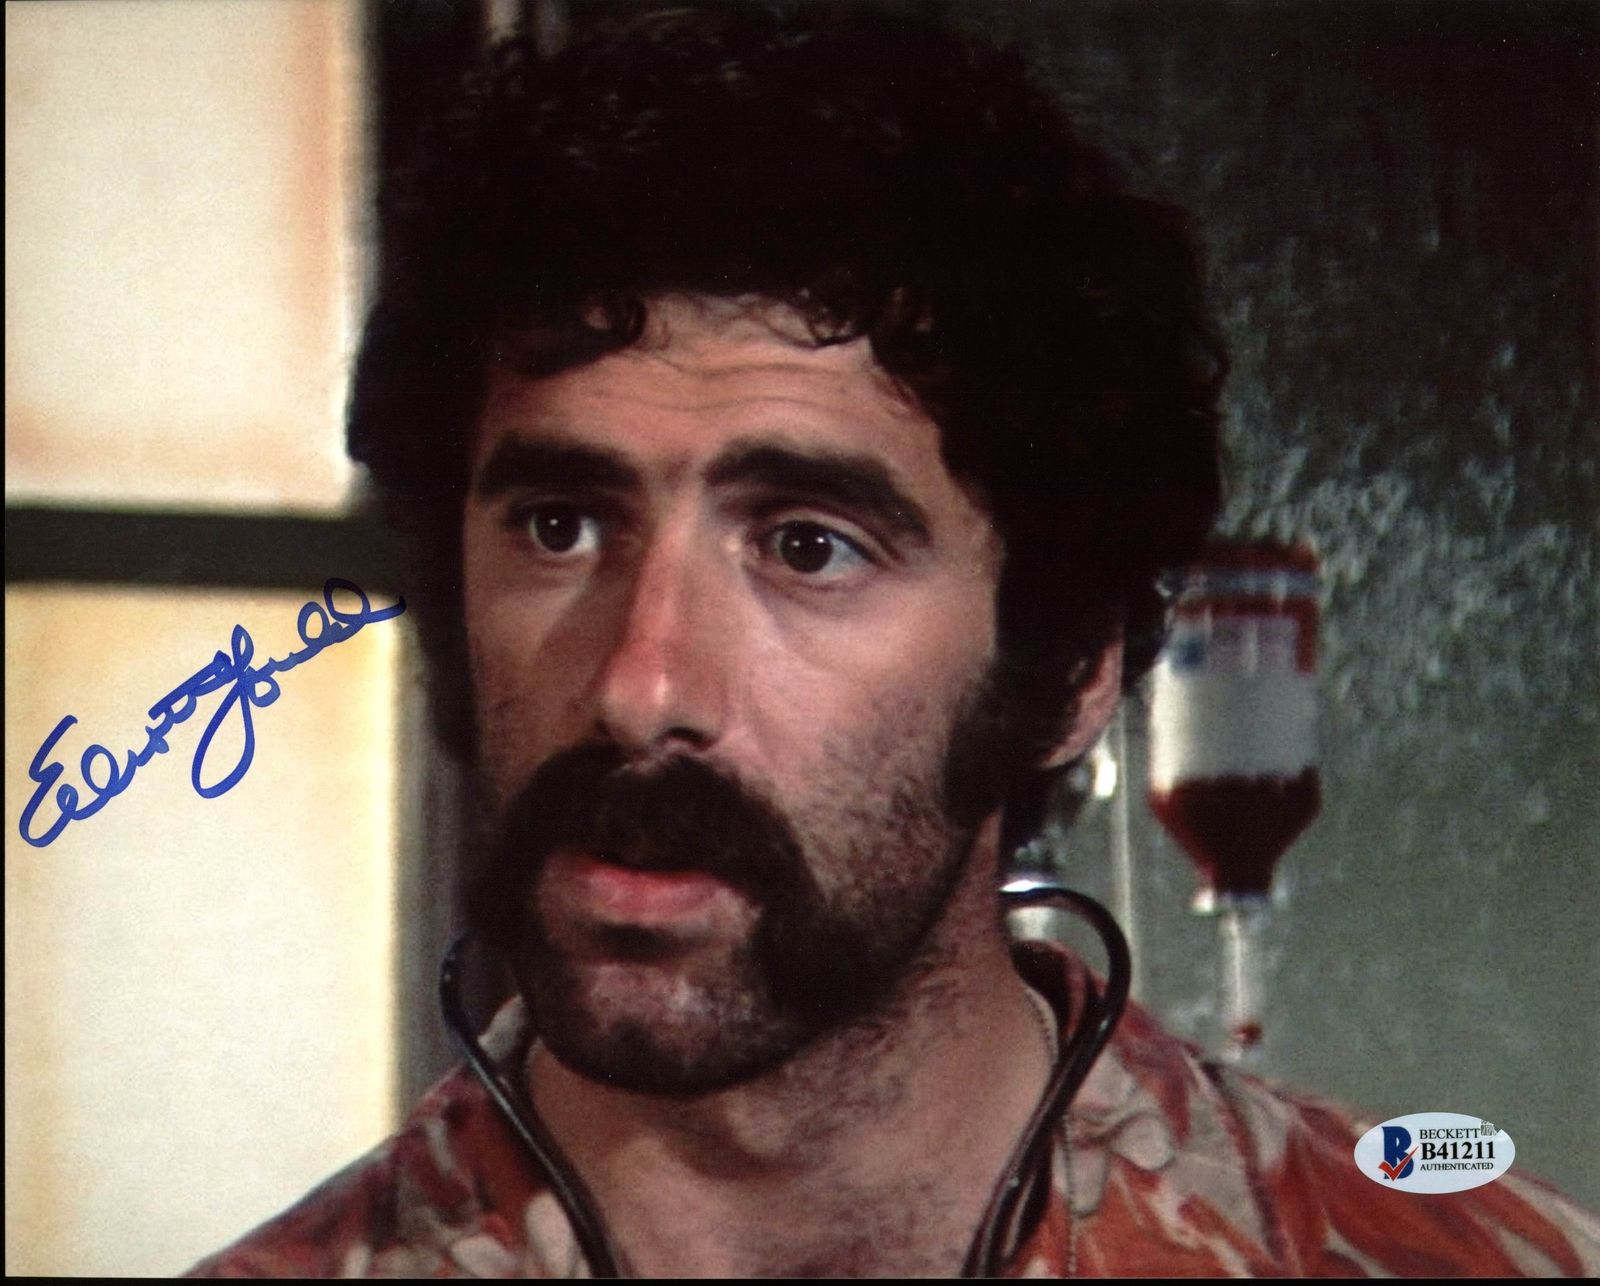 Elliott Gould Authentic Signed Custom Autographed Trading Card Coa With The Best Service Cards & Papers Autographs-original